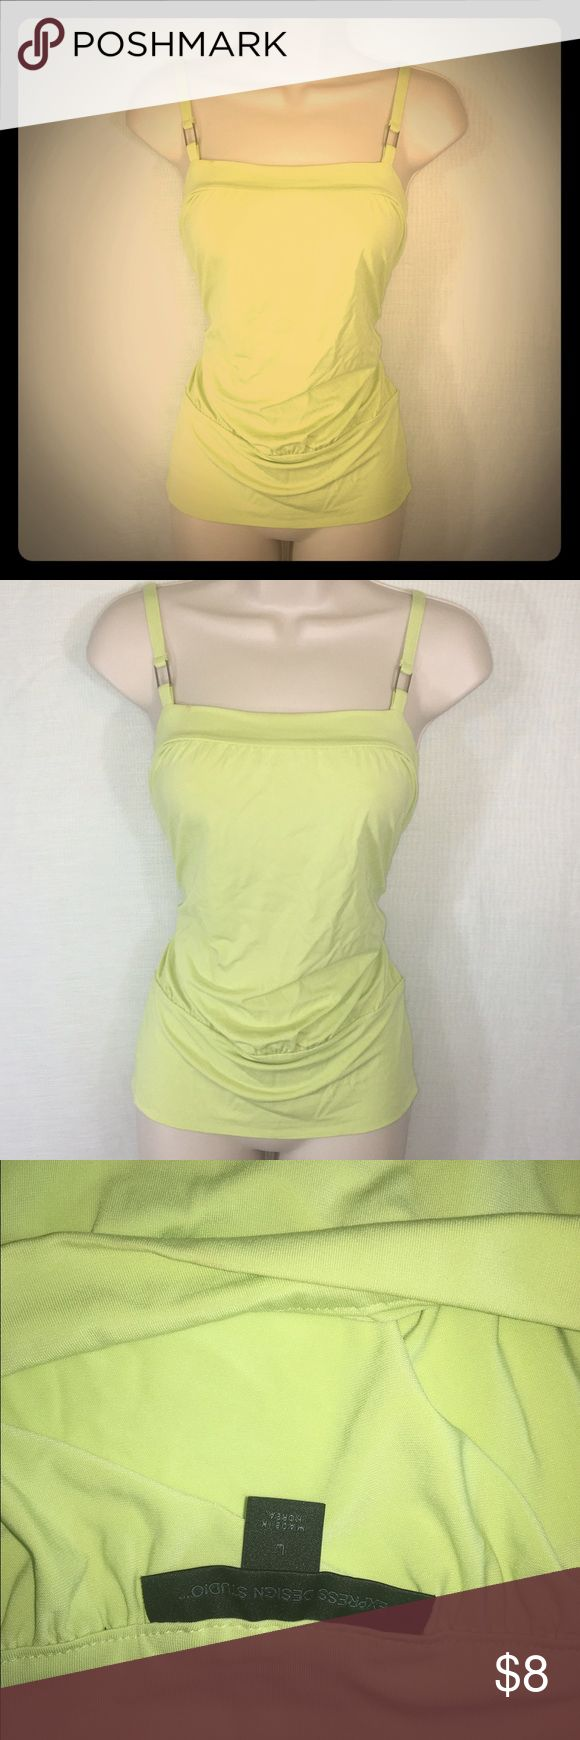 Limited Lime Green Top-L A lime green top from The Limited that is forgiving and flattering. The billowy fit is the perfect way to add movement to an outfit and the unique color adds fun to either a casual or formal outfit! The Limited Tops Blouses